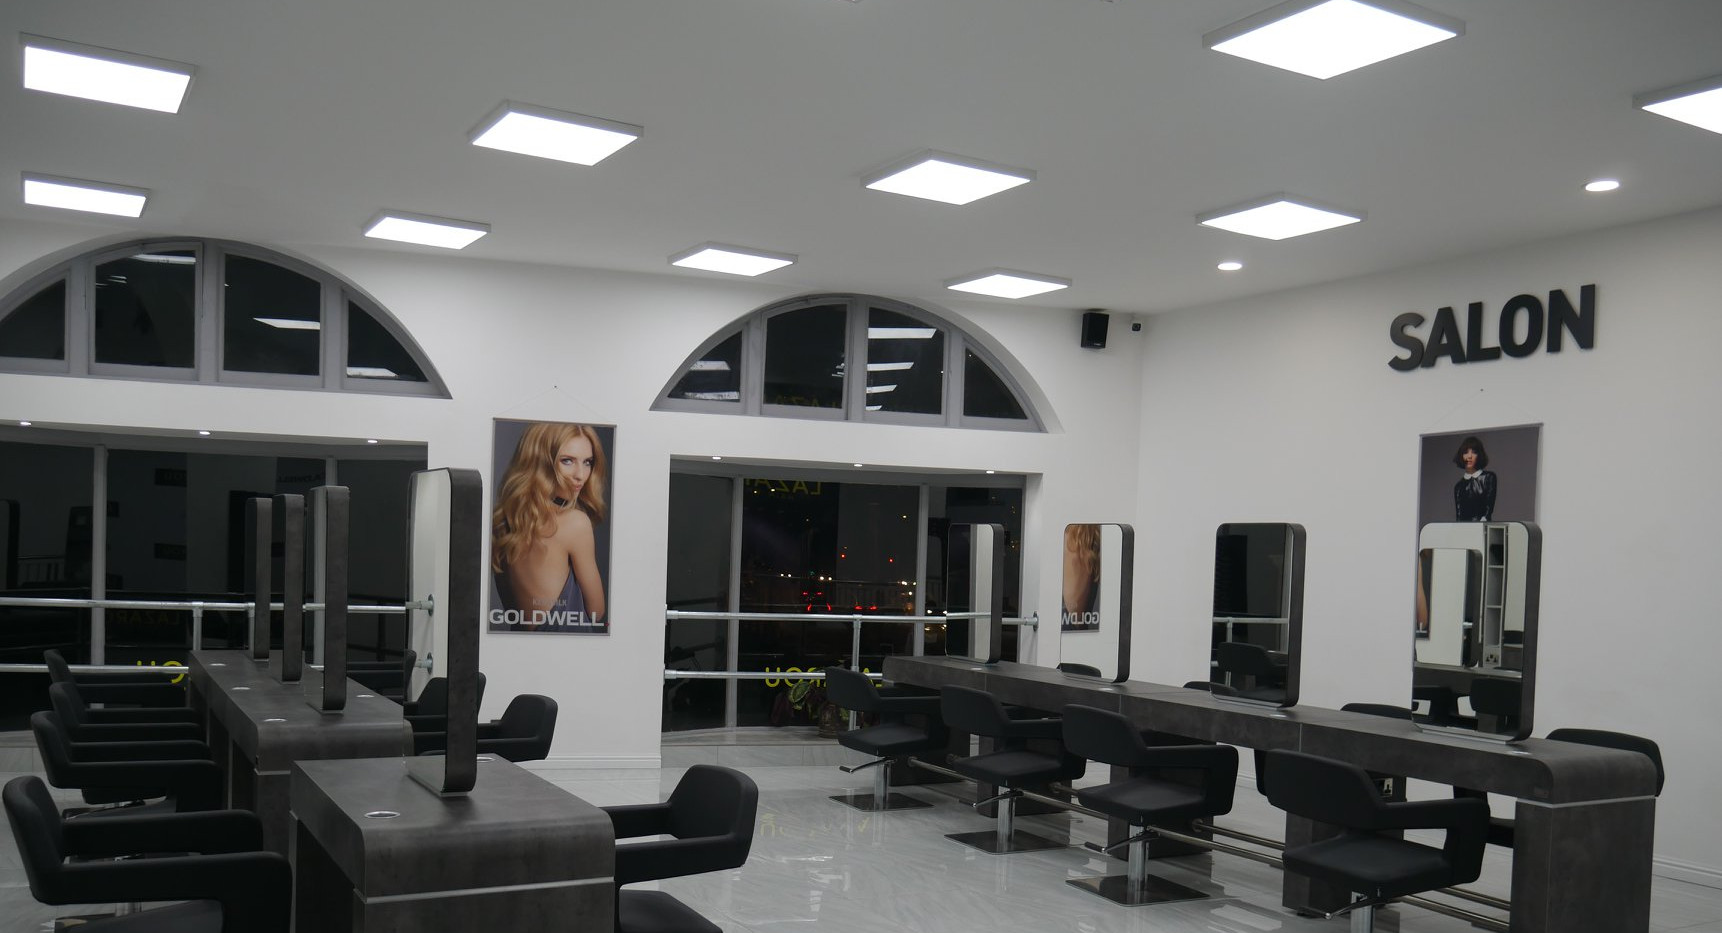 Hair Salon 1.jpg